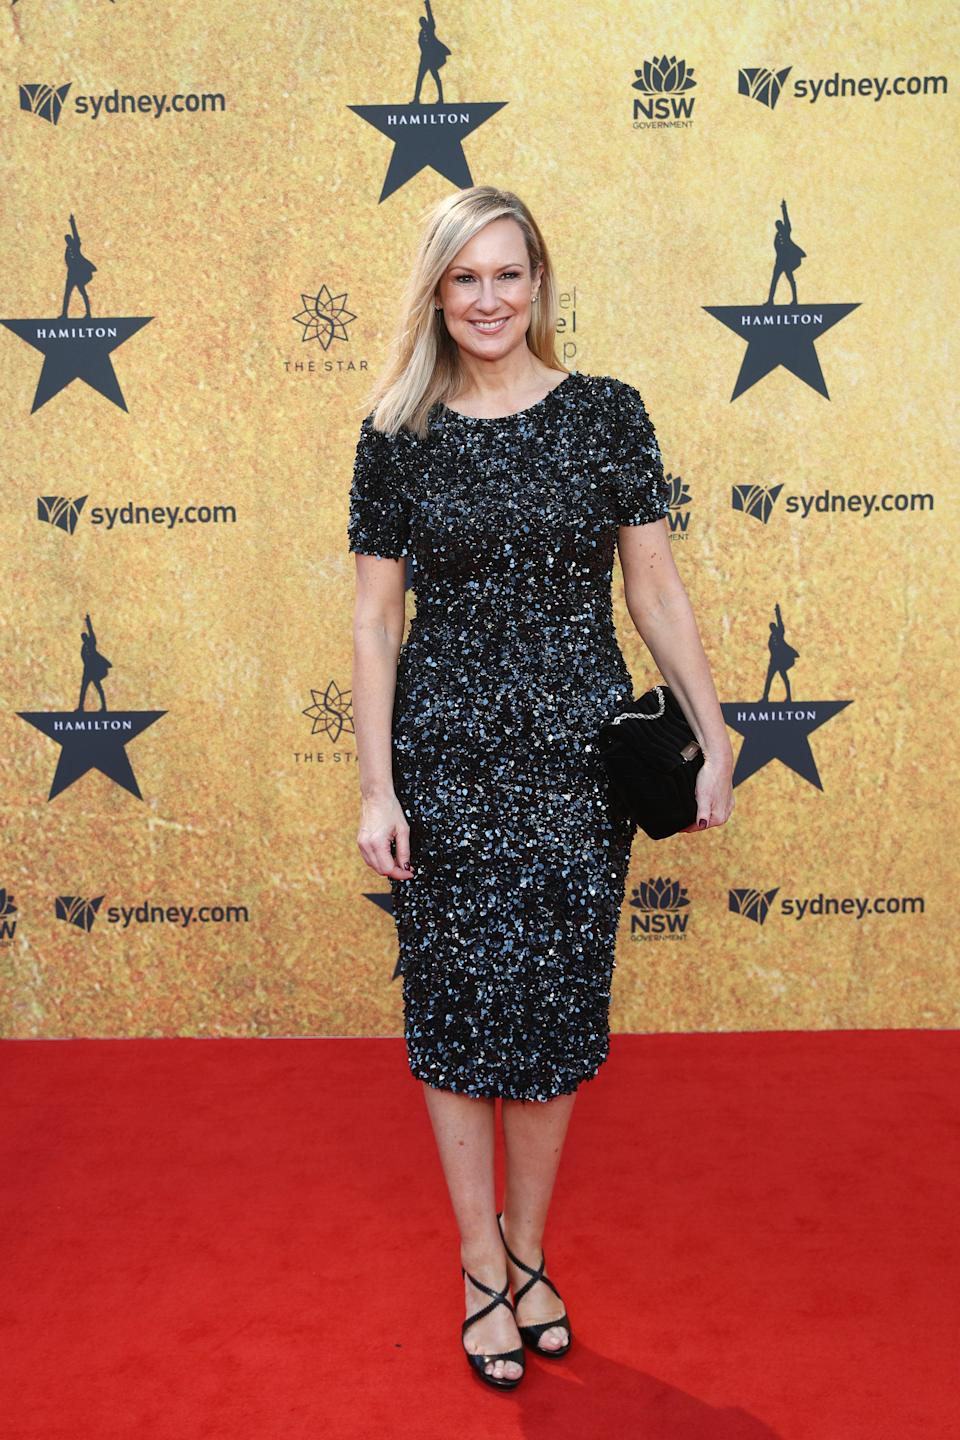 Melissa Doyle wears a black sparkly dress on the red carpet at the Australian premiere of Hamilton at Lyric Theatre, Star City on March 27, 2021 in Sydney, Australia. (Photo by Don Arnold/WireImage)